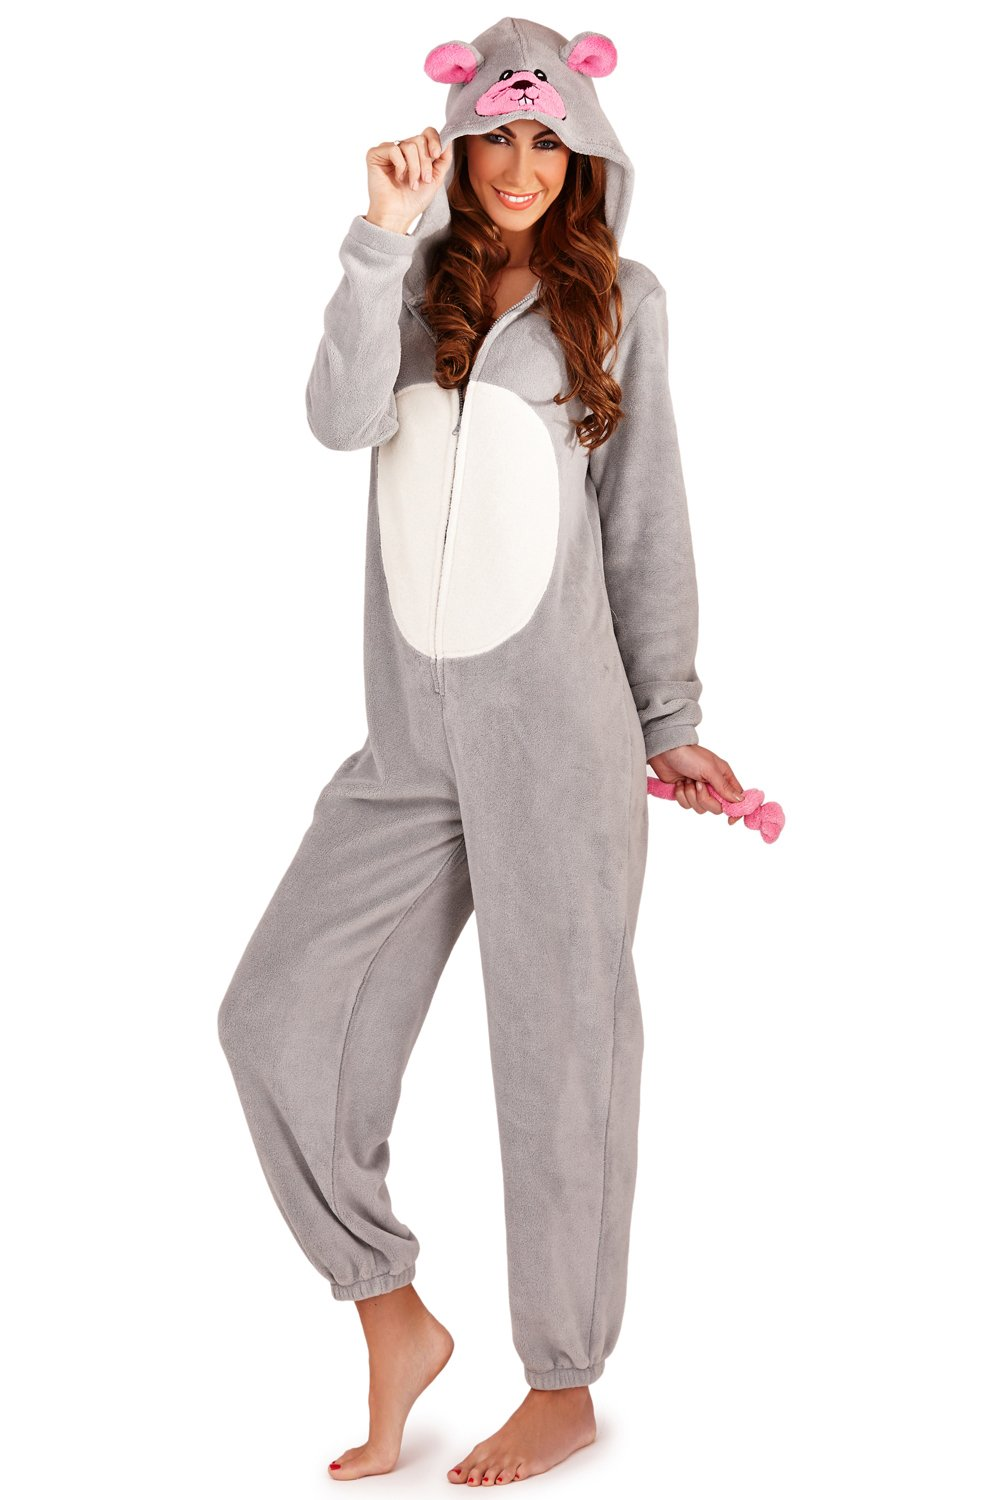 Loungeable Boutique Womens Fleece Novelty Animal All in One Onesie